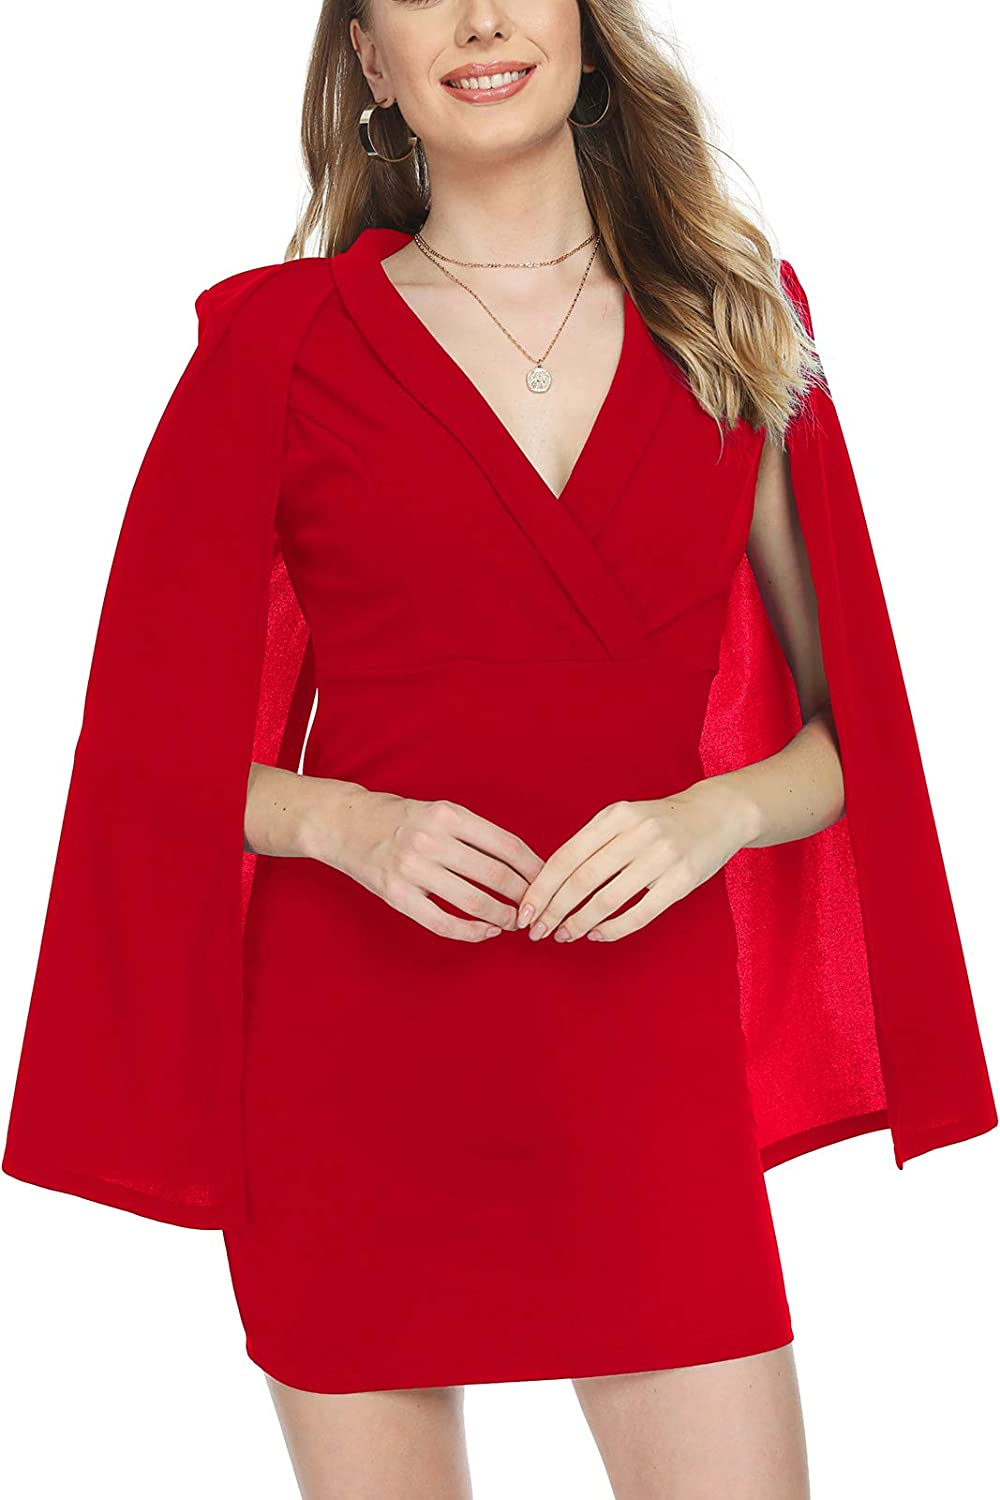 Tivanna Cloak Sleeve Mini Dress Sexy Deep Vneck Cocktail Dresses for Women